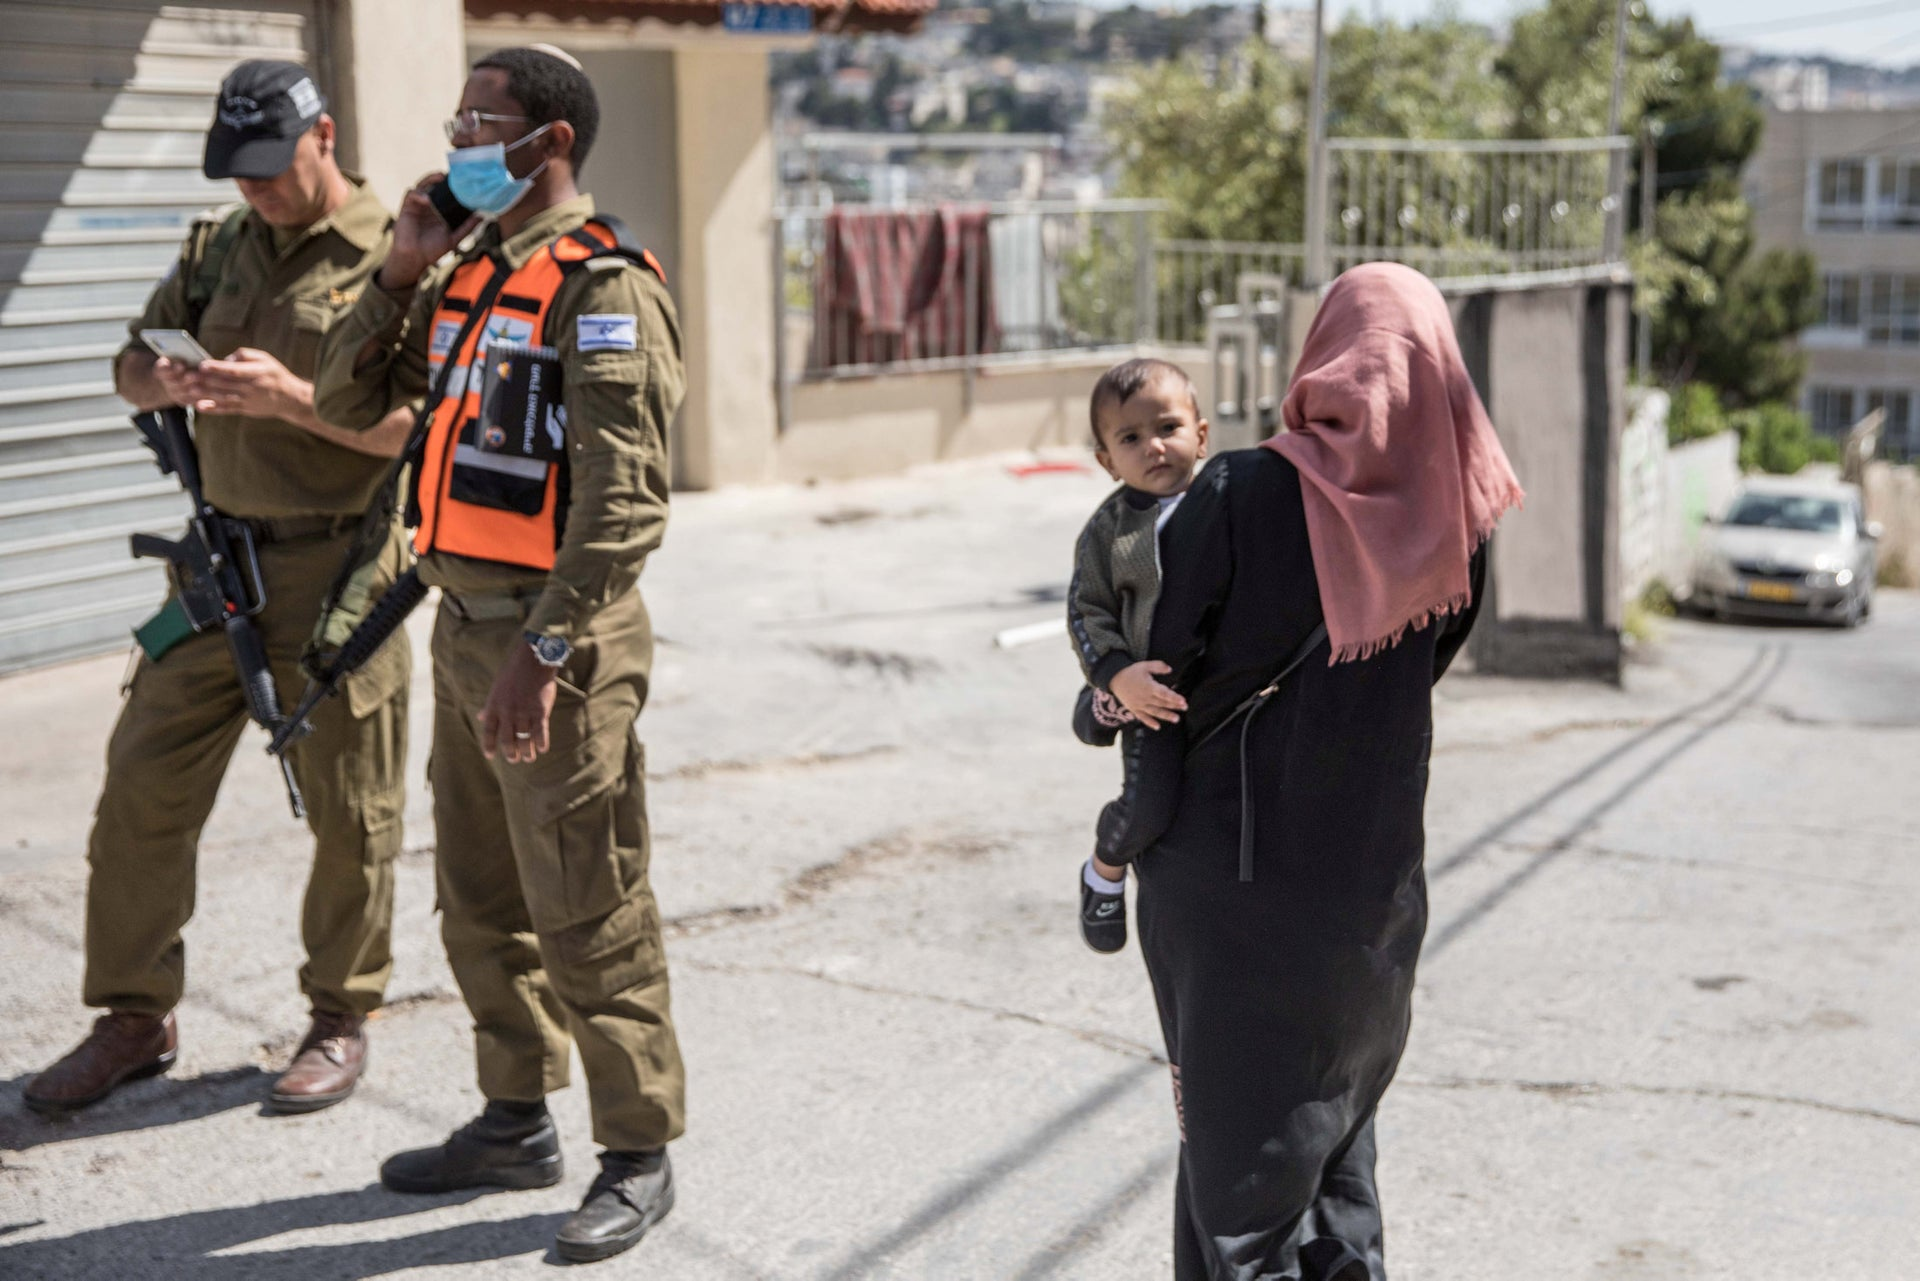 Home Front soldiers and residents of the A-Tur neighborhood in East Jerusalem, April 30, 2020